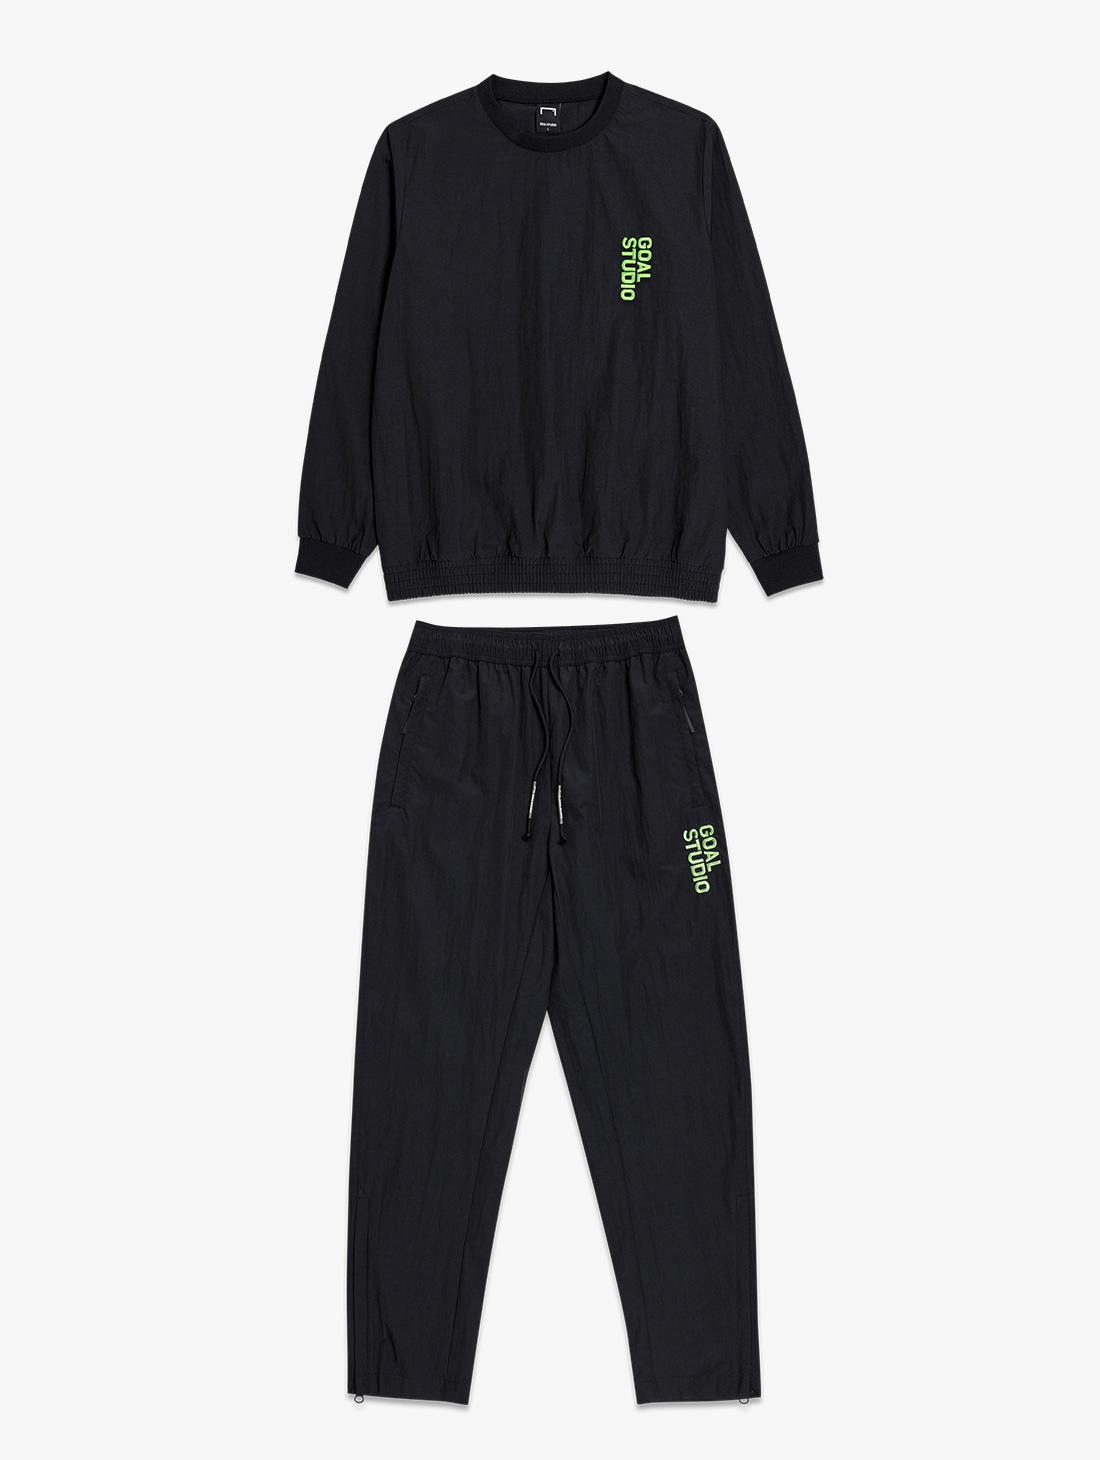 GOALSTUDIO [10% OFF] NYLON BLEND WOVEN SWEATSHIRT & WOVEN PANTS SET